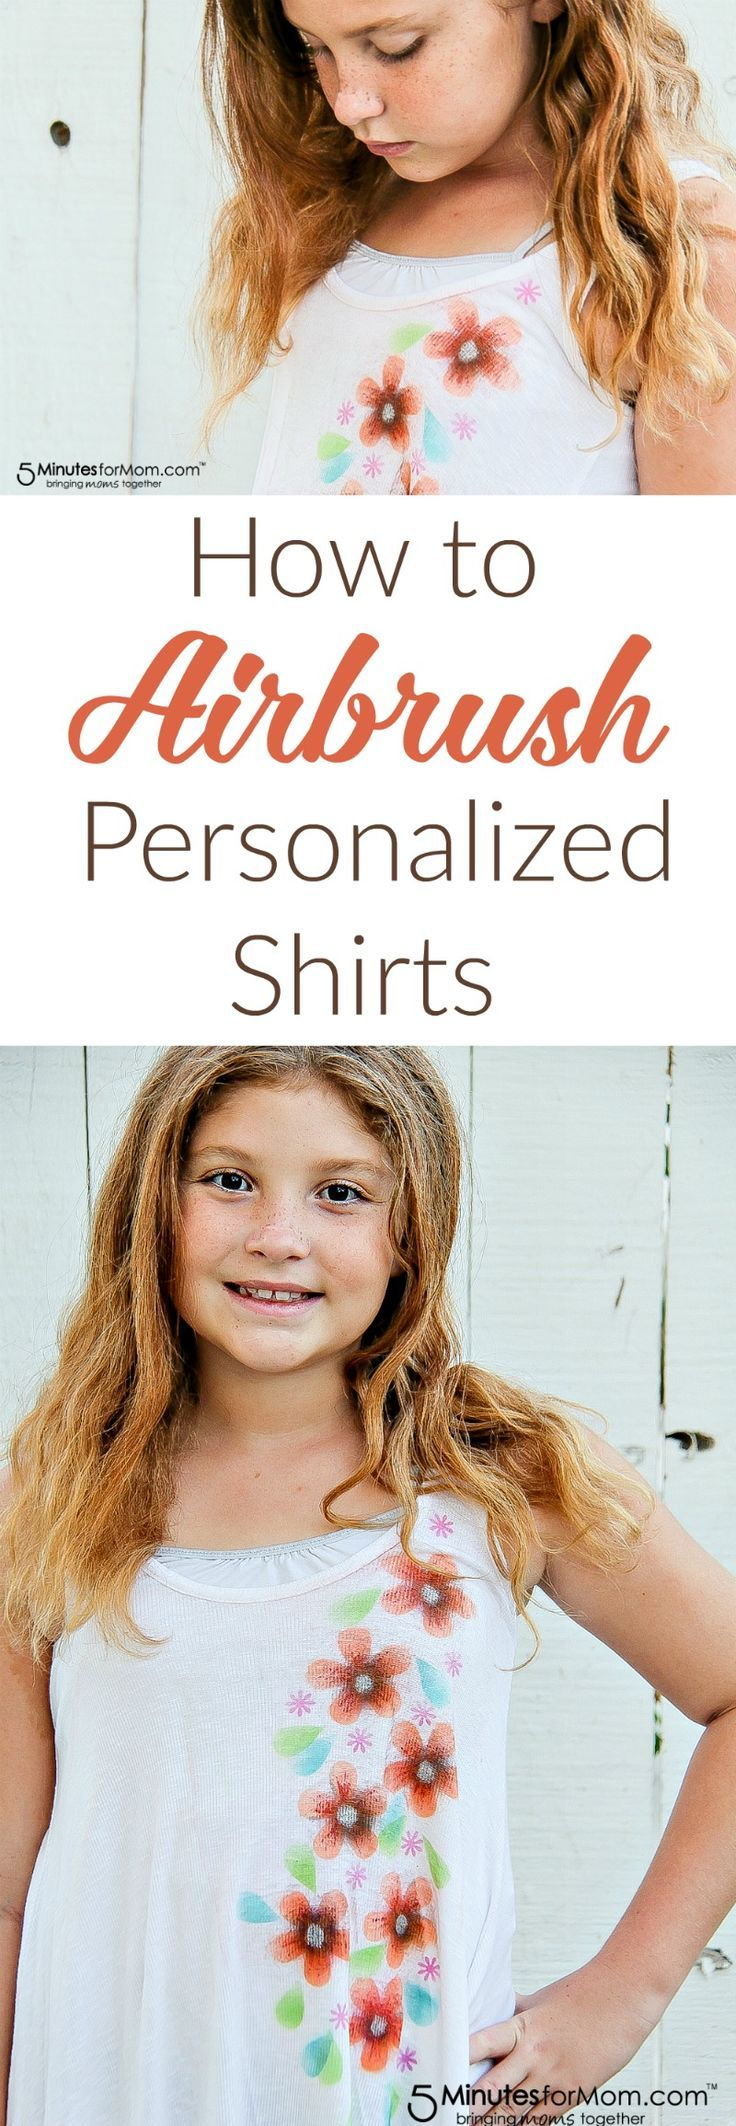 How to Airbrush Personalized Shirts for Kids - Follow these steps for a fun DIY craft of airbrushing customized shirts. Created for a sponsored post for Testors.